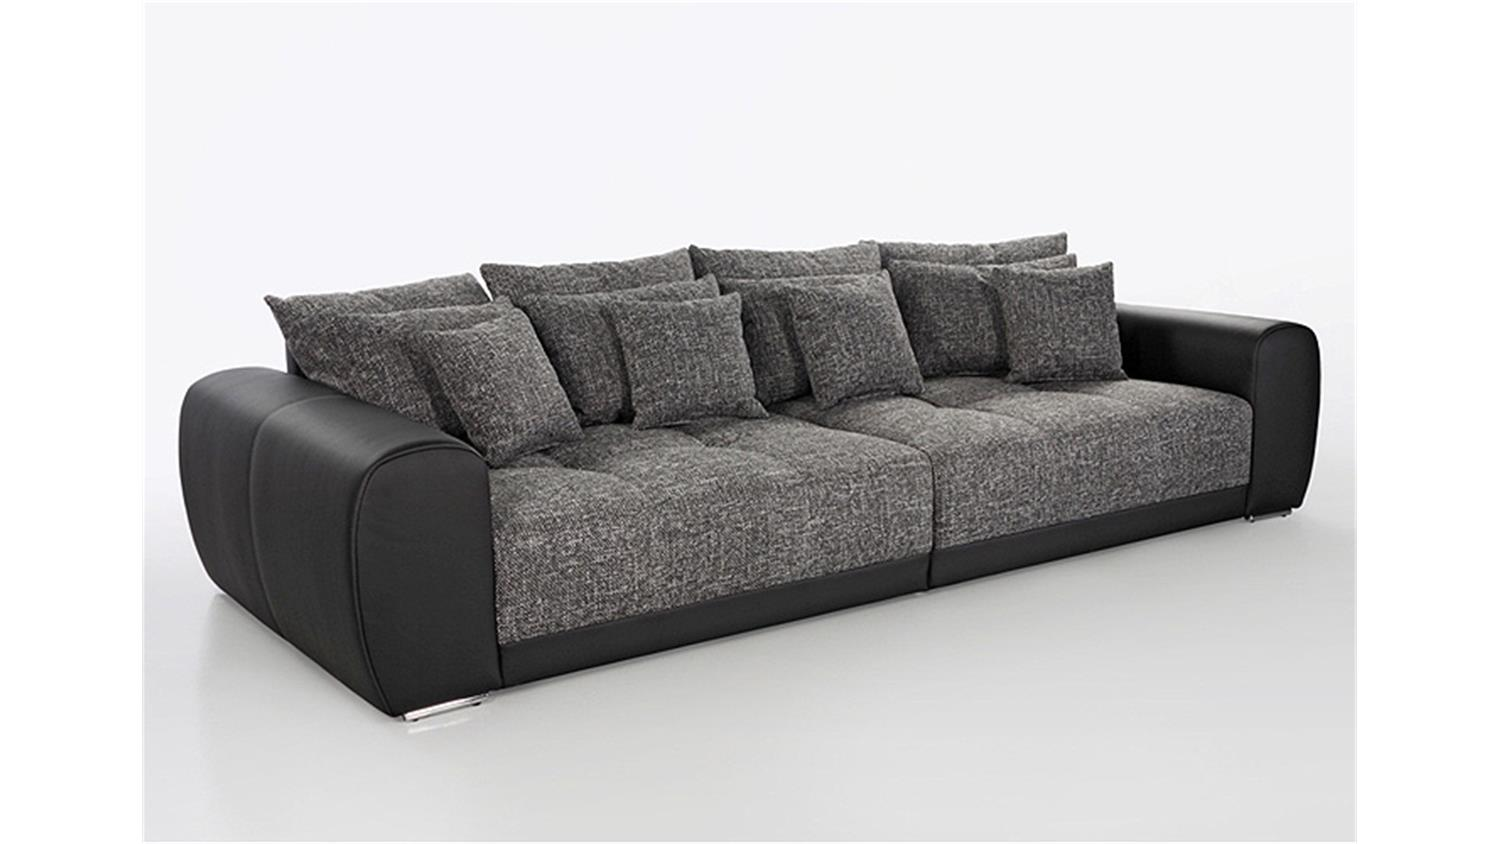 xxl sofa leder images page 695 homeandgarden